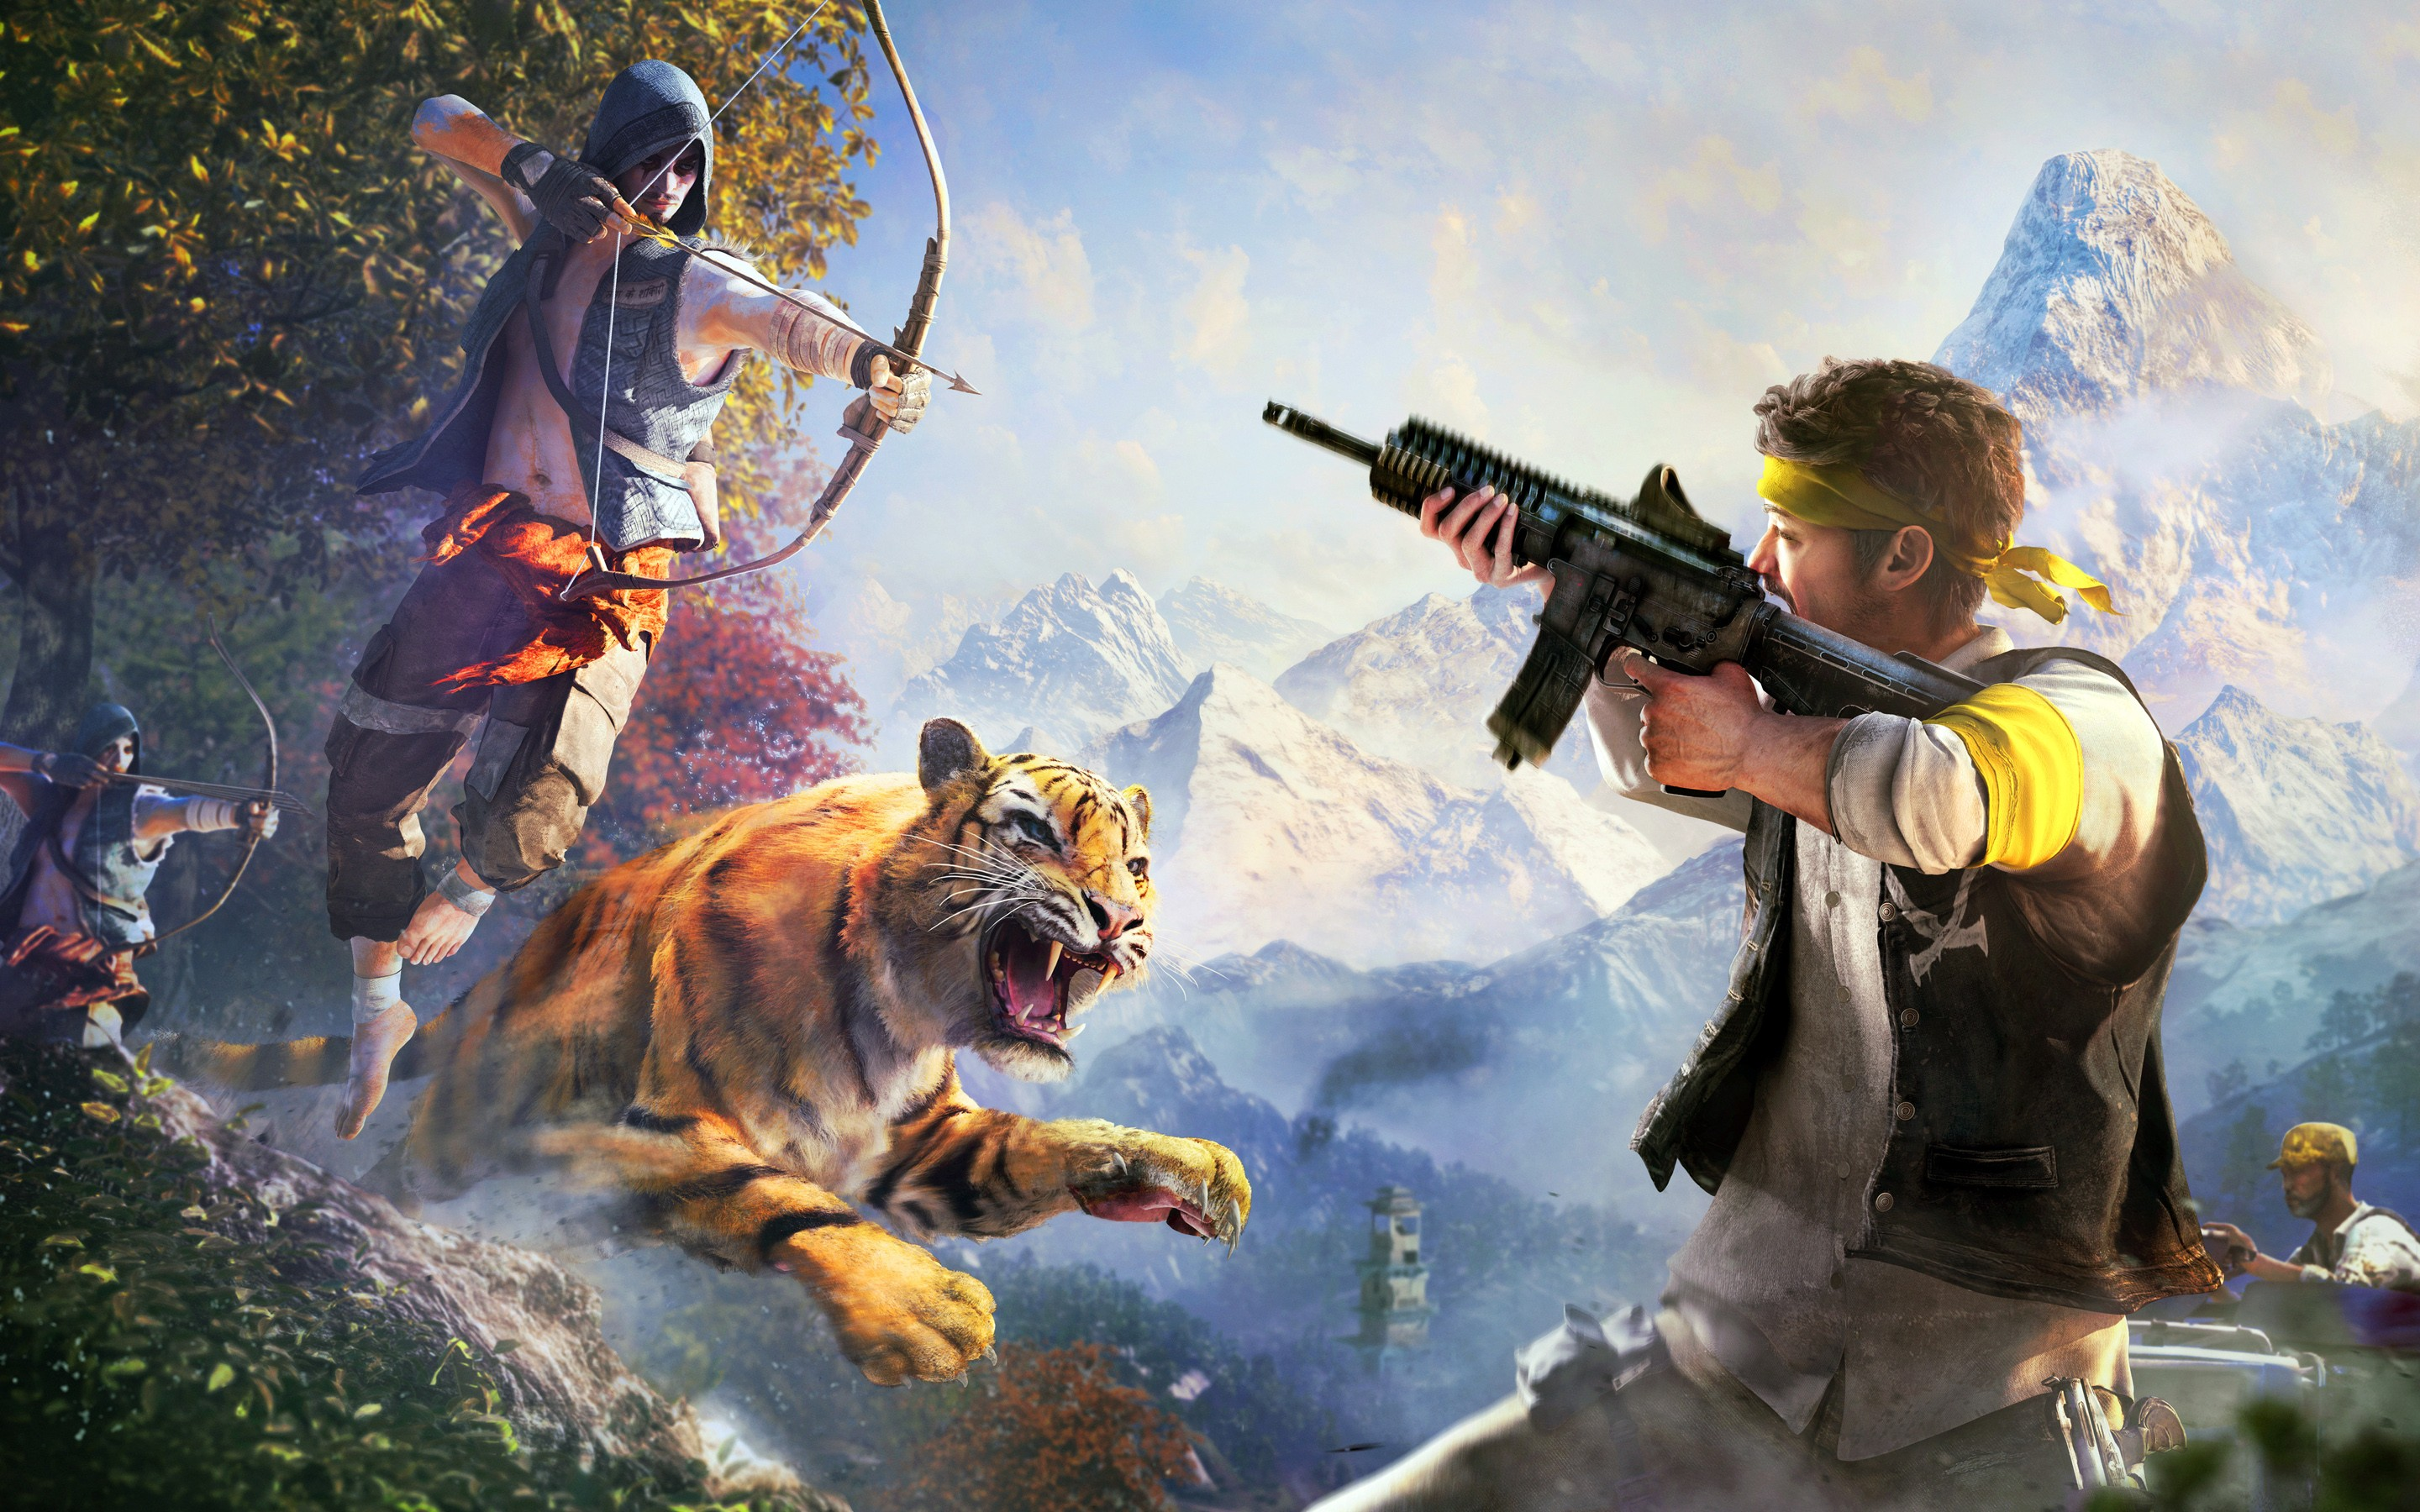 Far Cry 4 Game Hd Games 4k Wallpapers Images Backgrounds Photos And Pictures